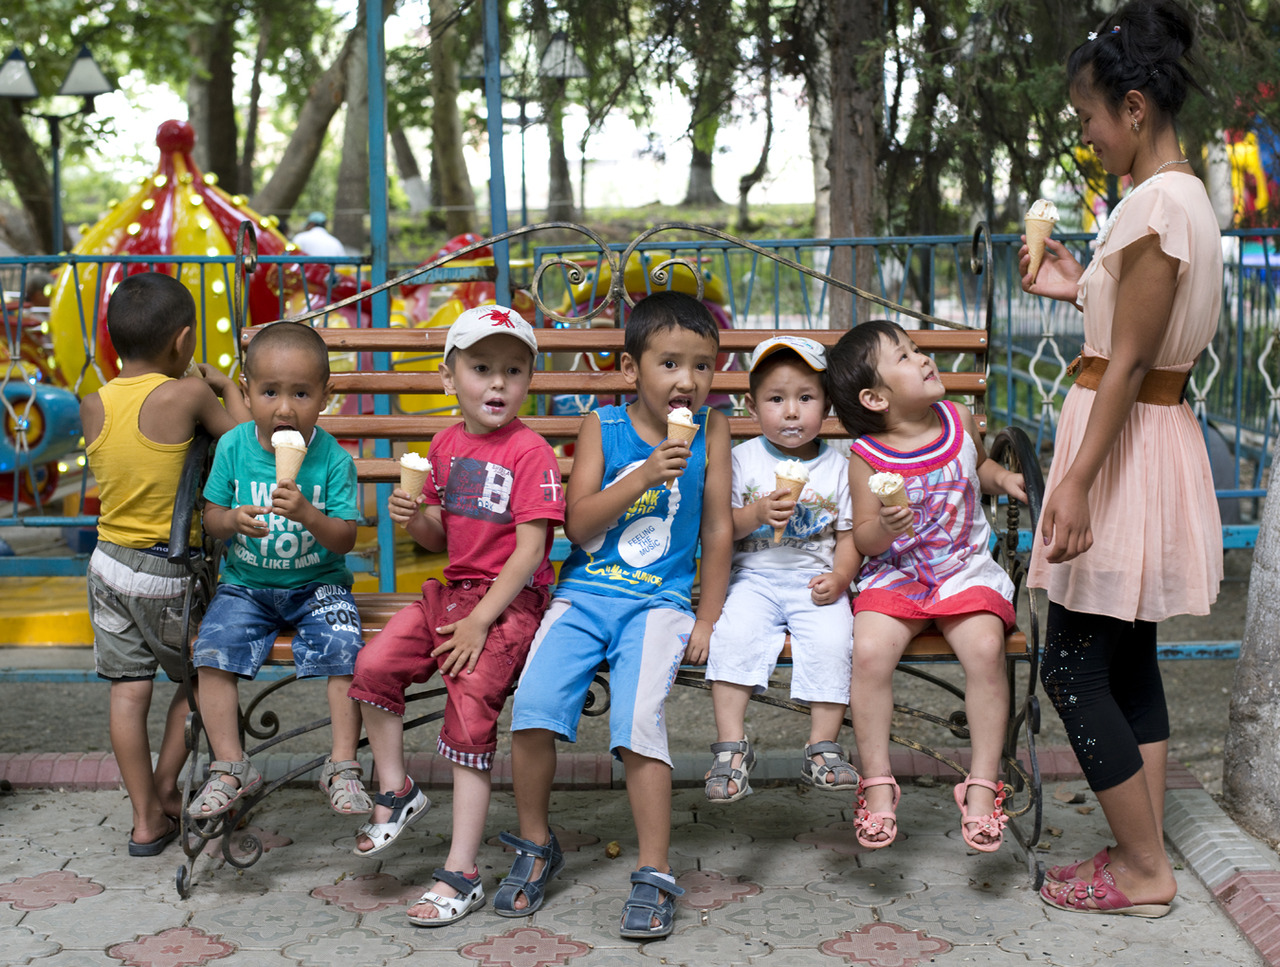 A babysitter watches over a group of kids as they eat ice cream in one of the several permanent parks established during the Soviet Era in Osh, Kyrgyzstan. The permanent amusement park is about 800m long and features bumper cars, cotton candy, bb guns, numerous outdoor venues for restaurants, and karaoke booths among other shops. The park offers an economic opportunity for at least 100 families to make a living maintaining an attraction, as well as provides a source of entertainment for the rest of the public.